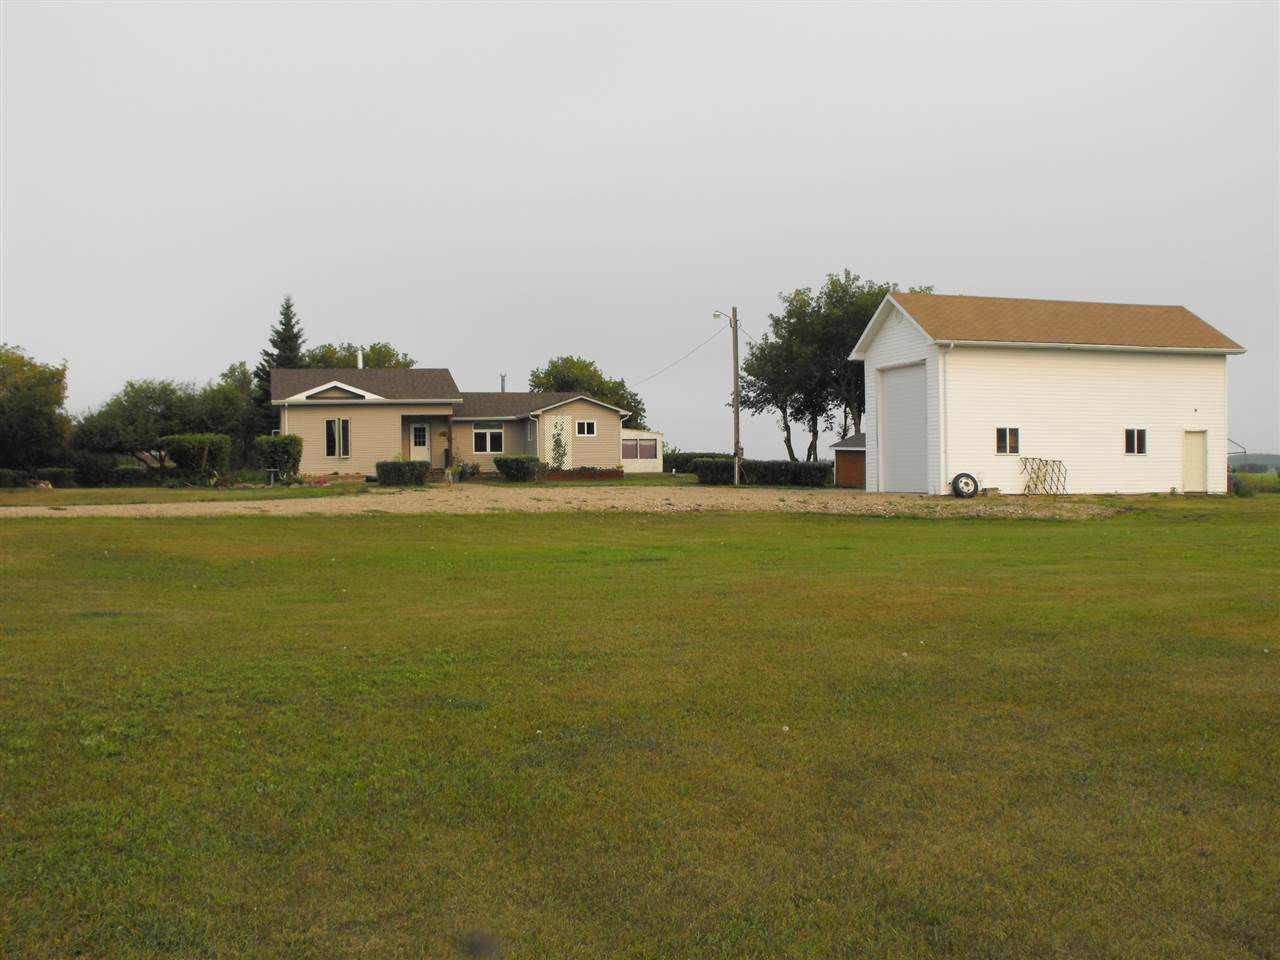 Main Photo: 5115 TWP Rd 563: Rural St. Paul County House for sale : MLS®# E4125229